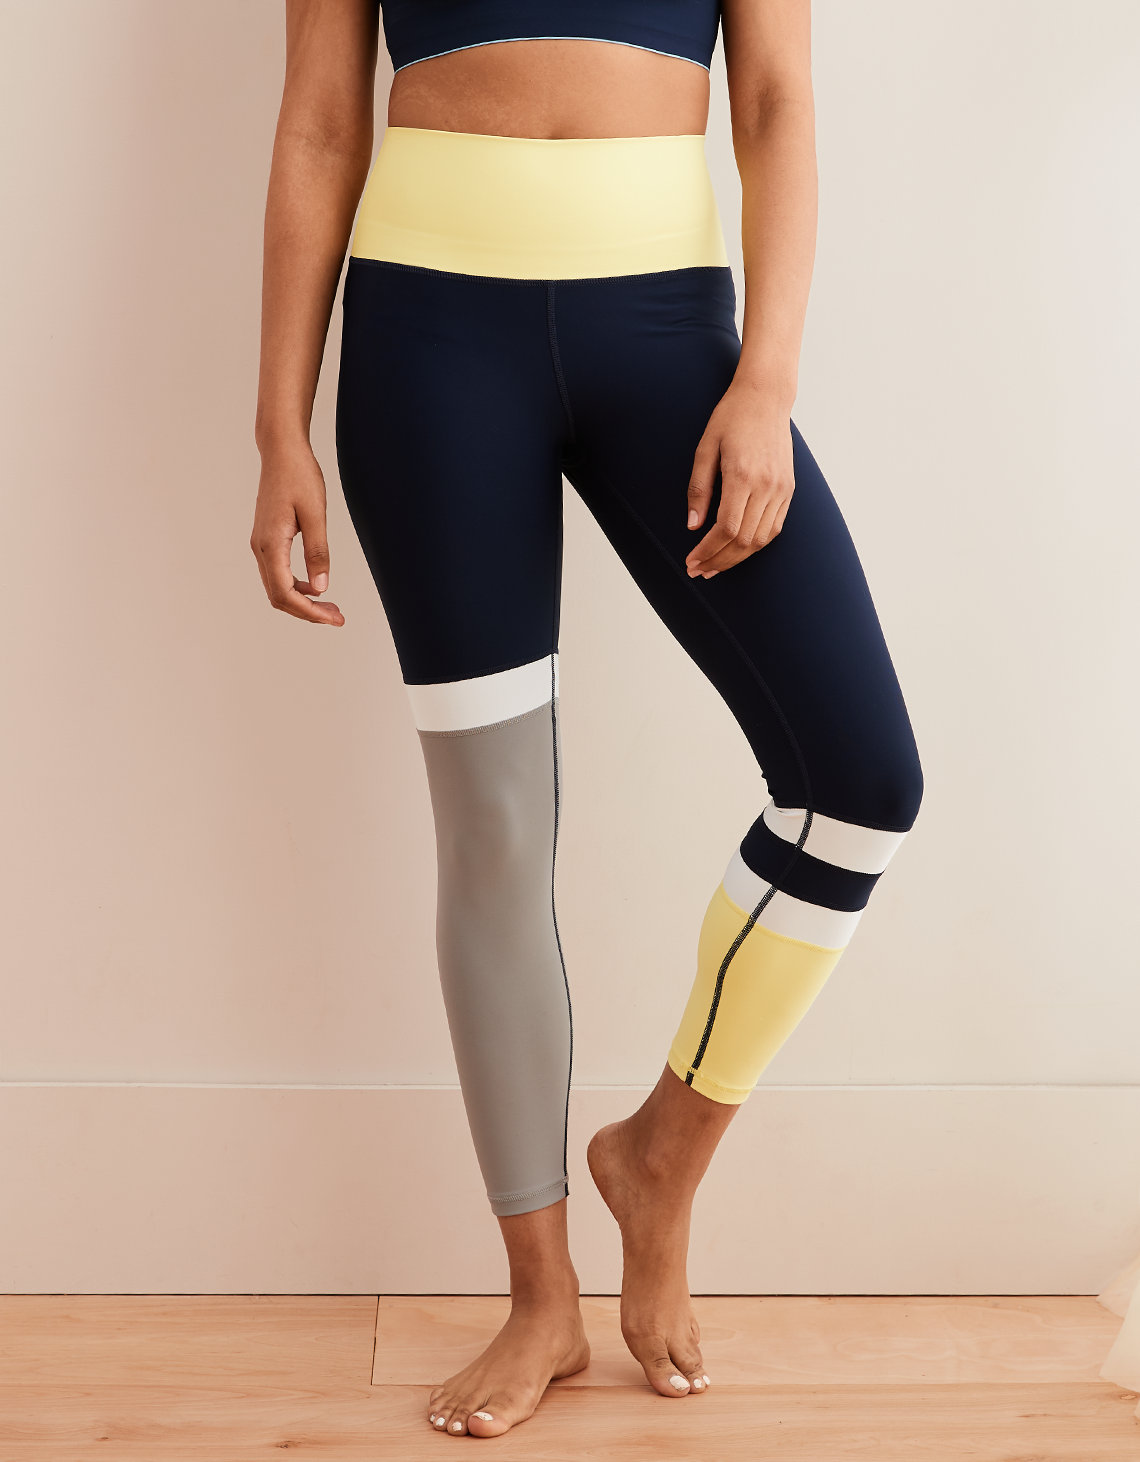 f9b54e5ea1ebe9 Aerie Move High Waisted Color Block 7 8 Legging. Placeholder image. Product  Image